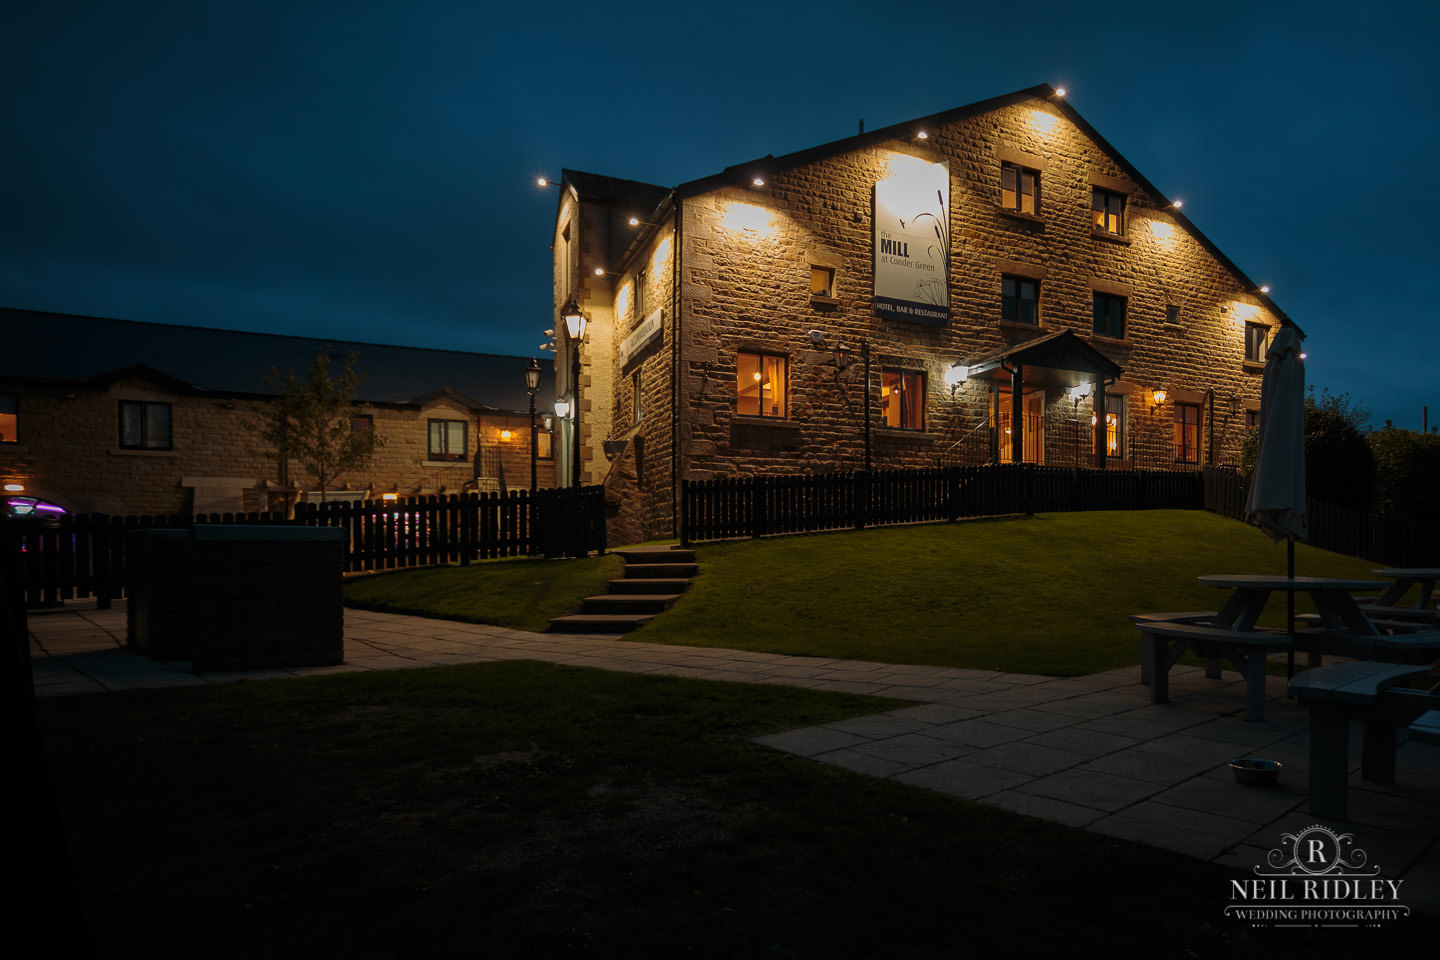 The Mill at Conder Green at night